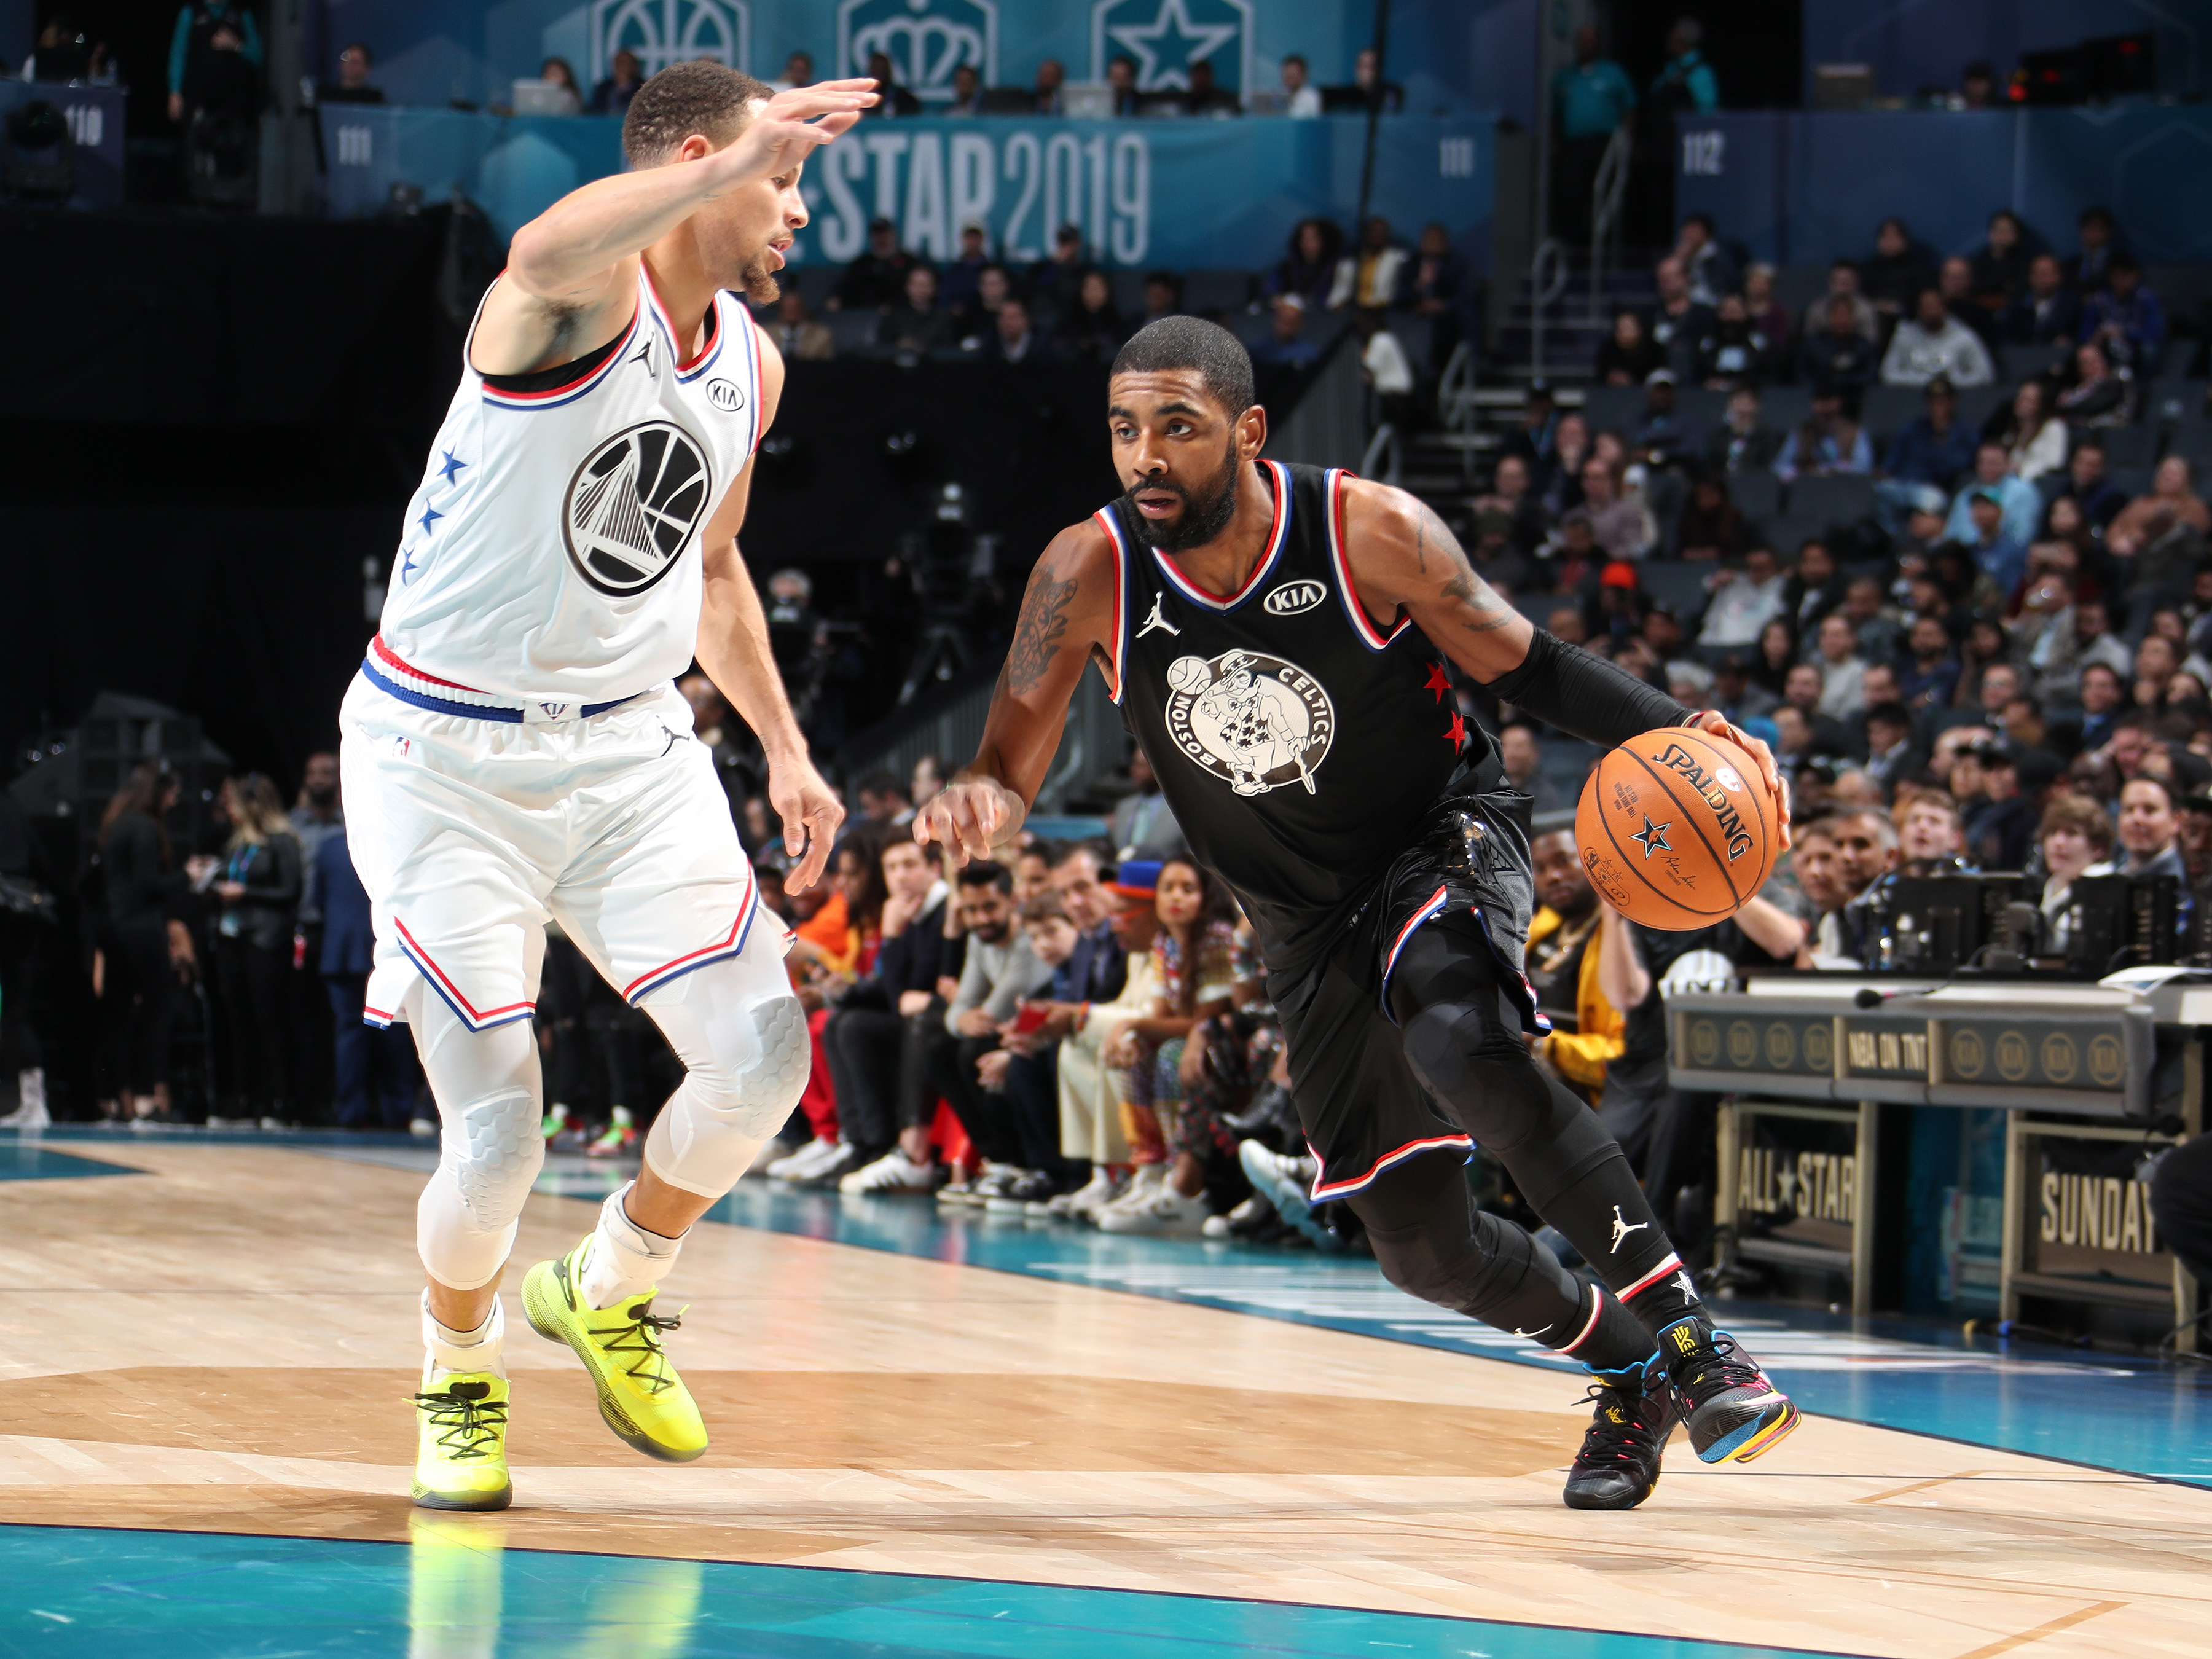 A professional basketball player dribbles past a defending member of the other team.